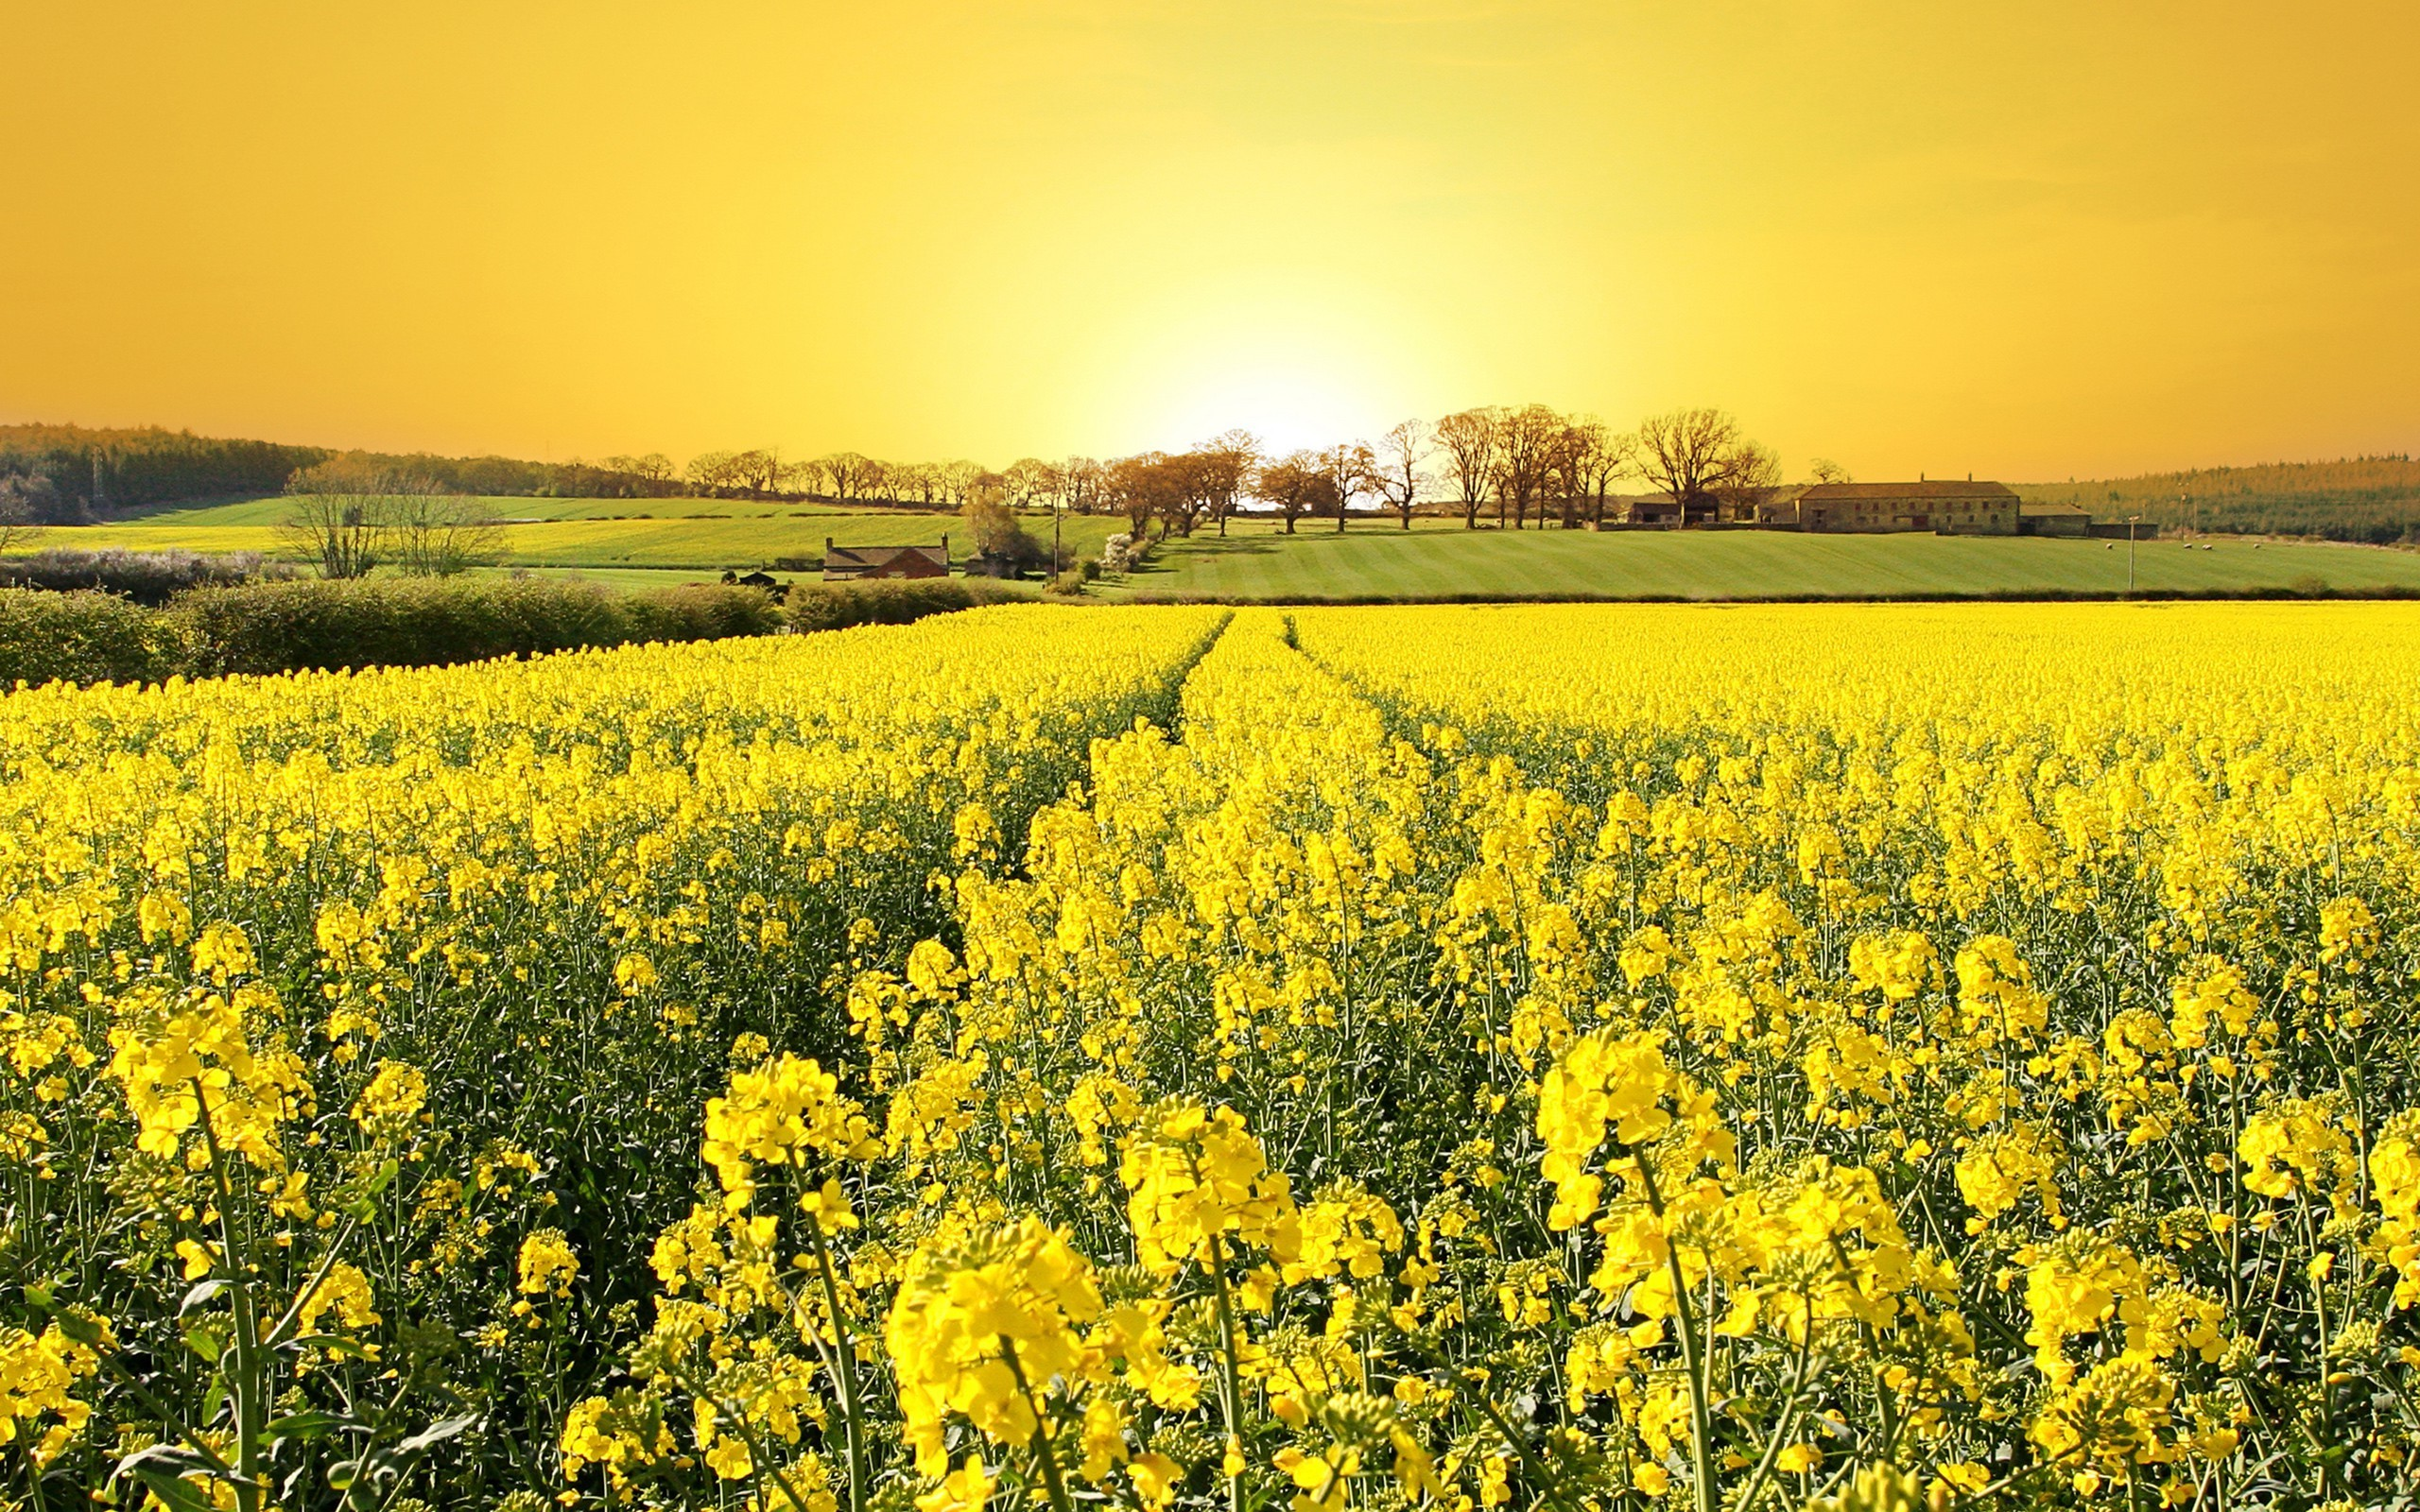 2560x1600 Rapeseed, Landscape, Field, Flowers, Yellow Flowers, Sunlight Wallpapers HD  / Desktop and Mobile Backgrounds